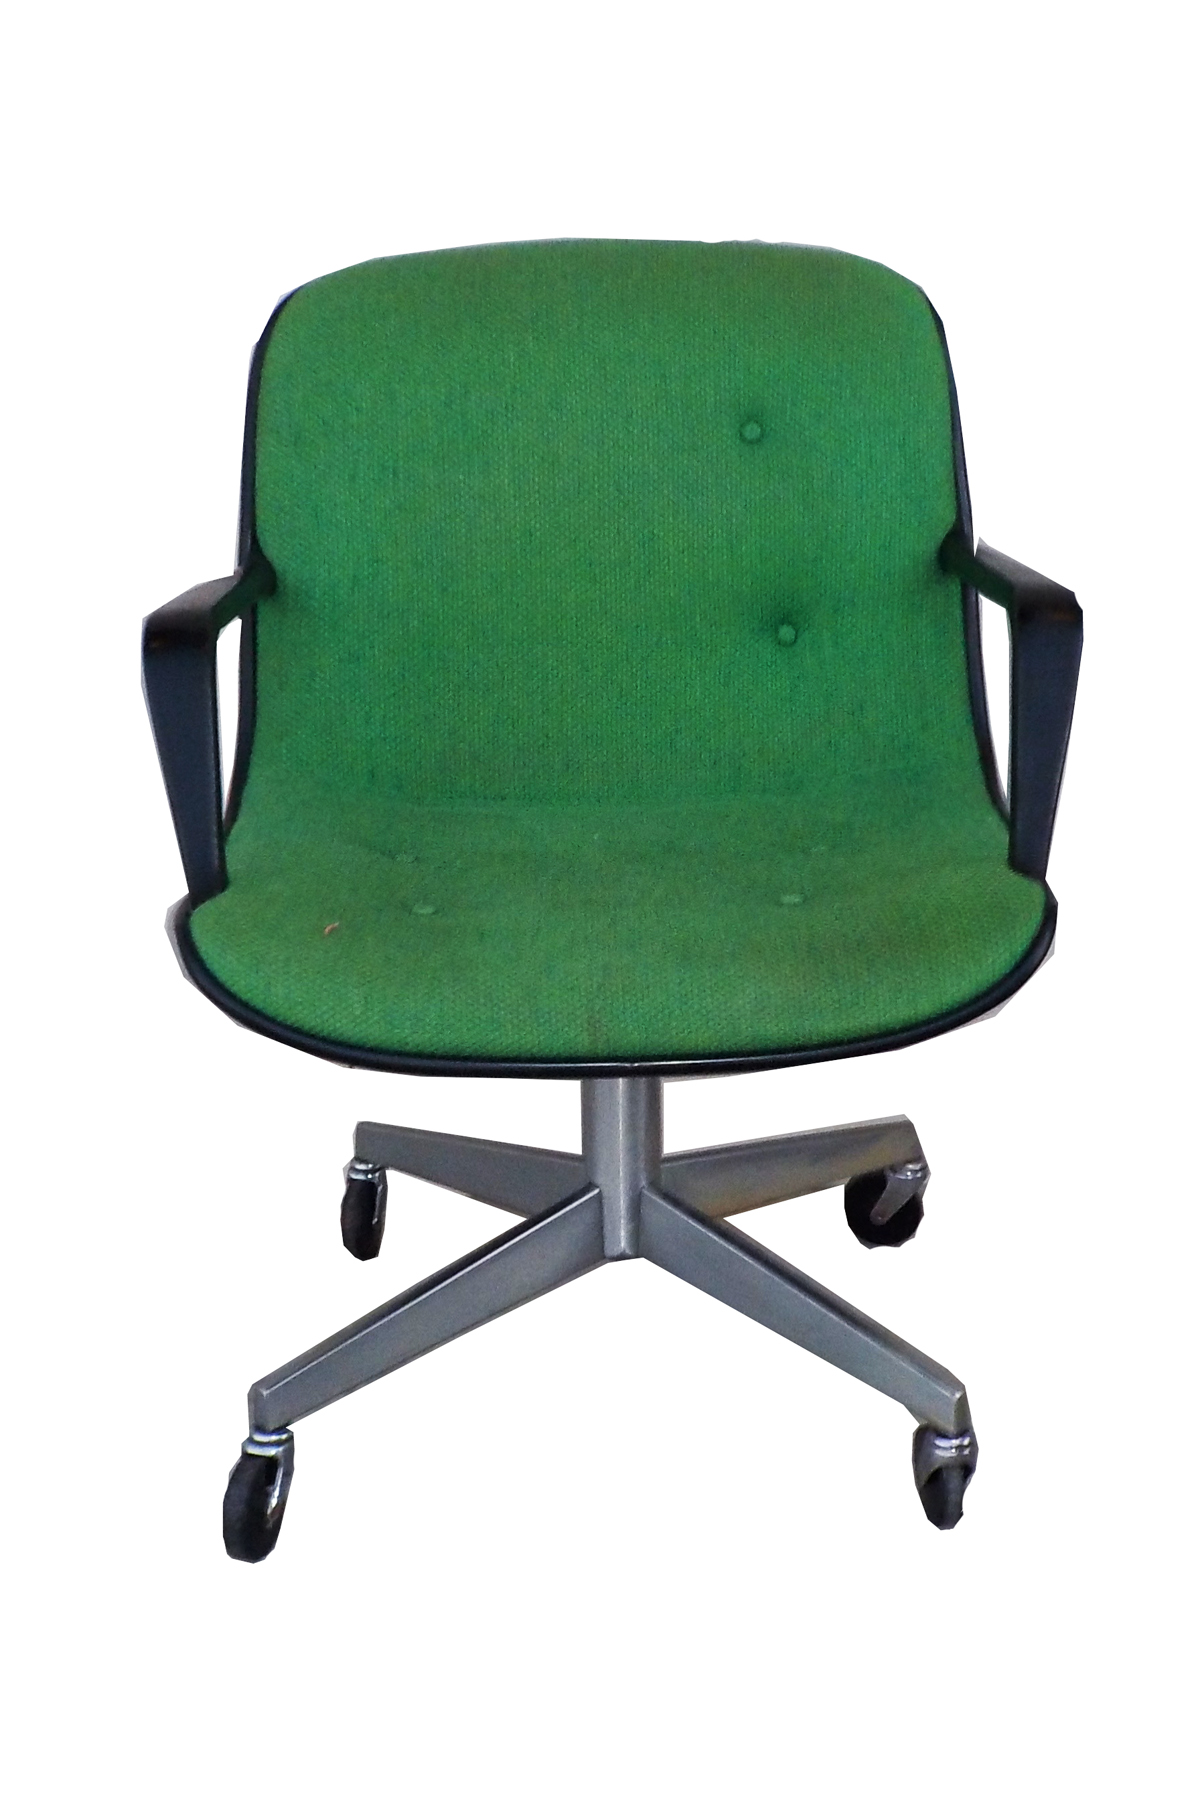 Beau MCM Green Vintage Office Chair By Steelcase